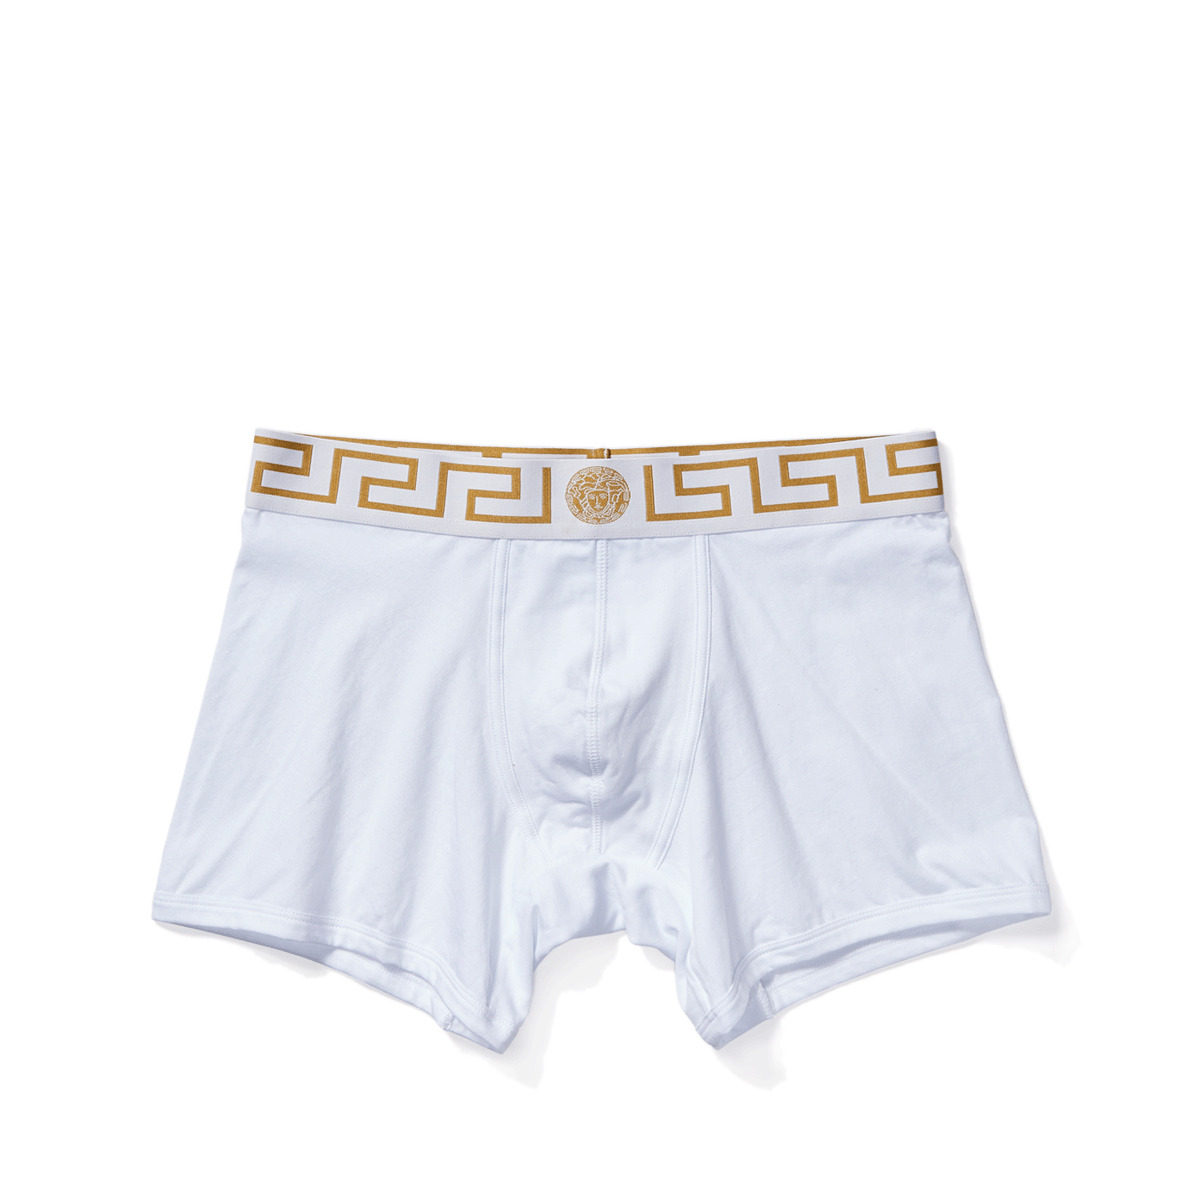 Versace - Iconic Long Boxer Brief with White and Gold Band